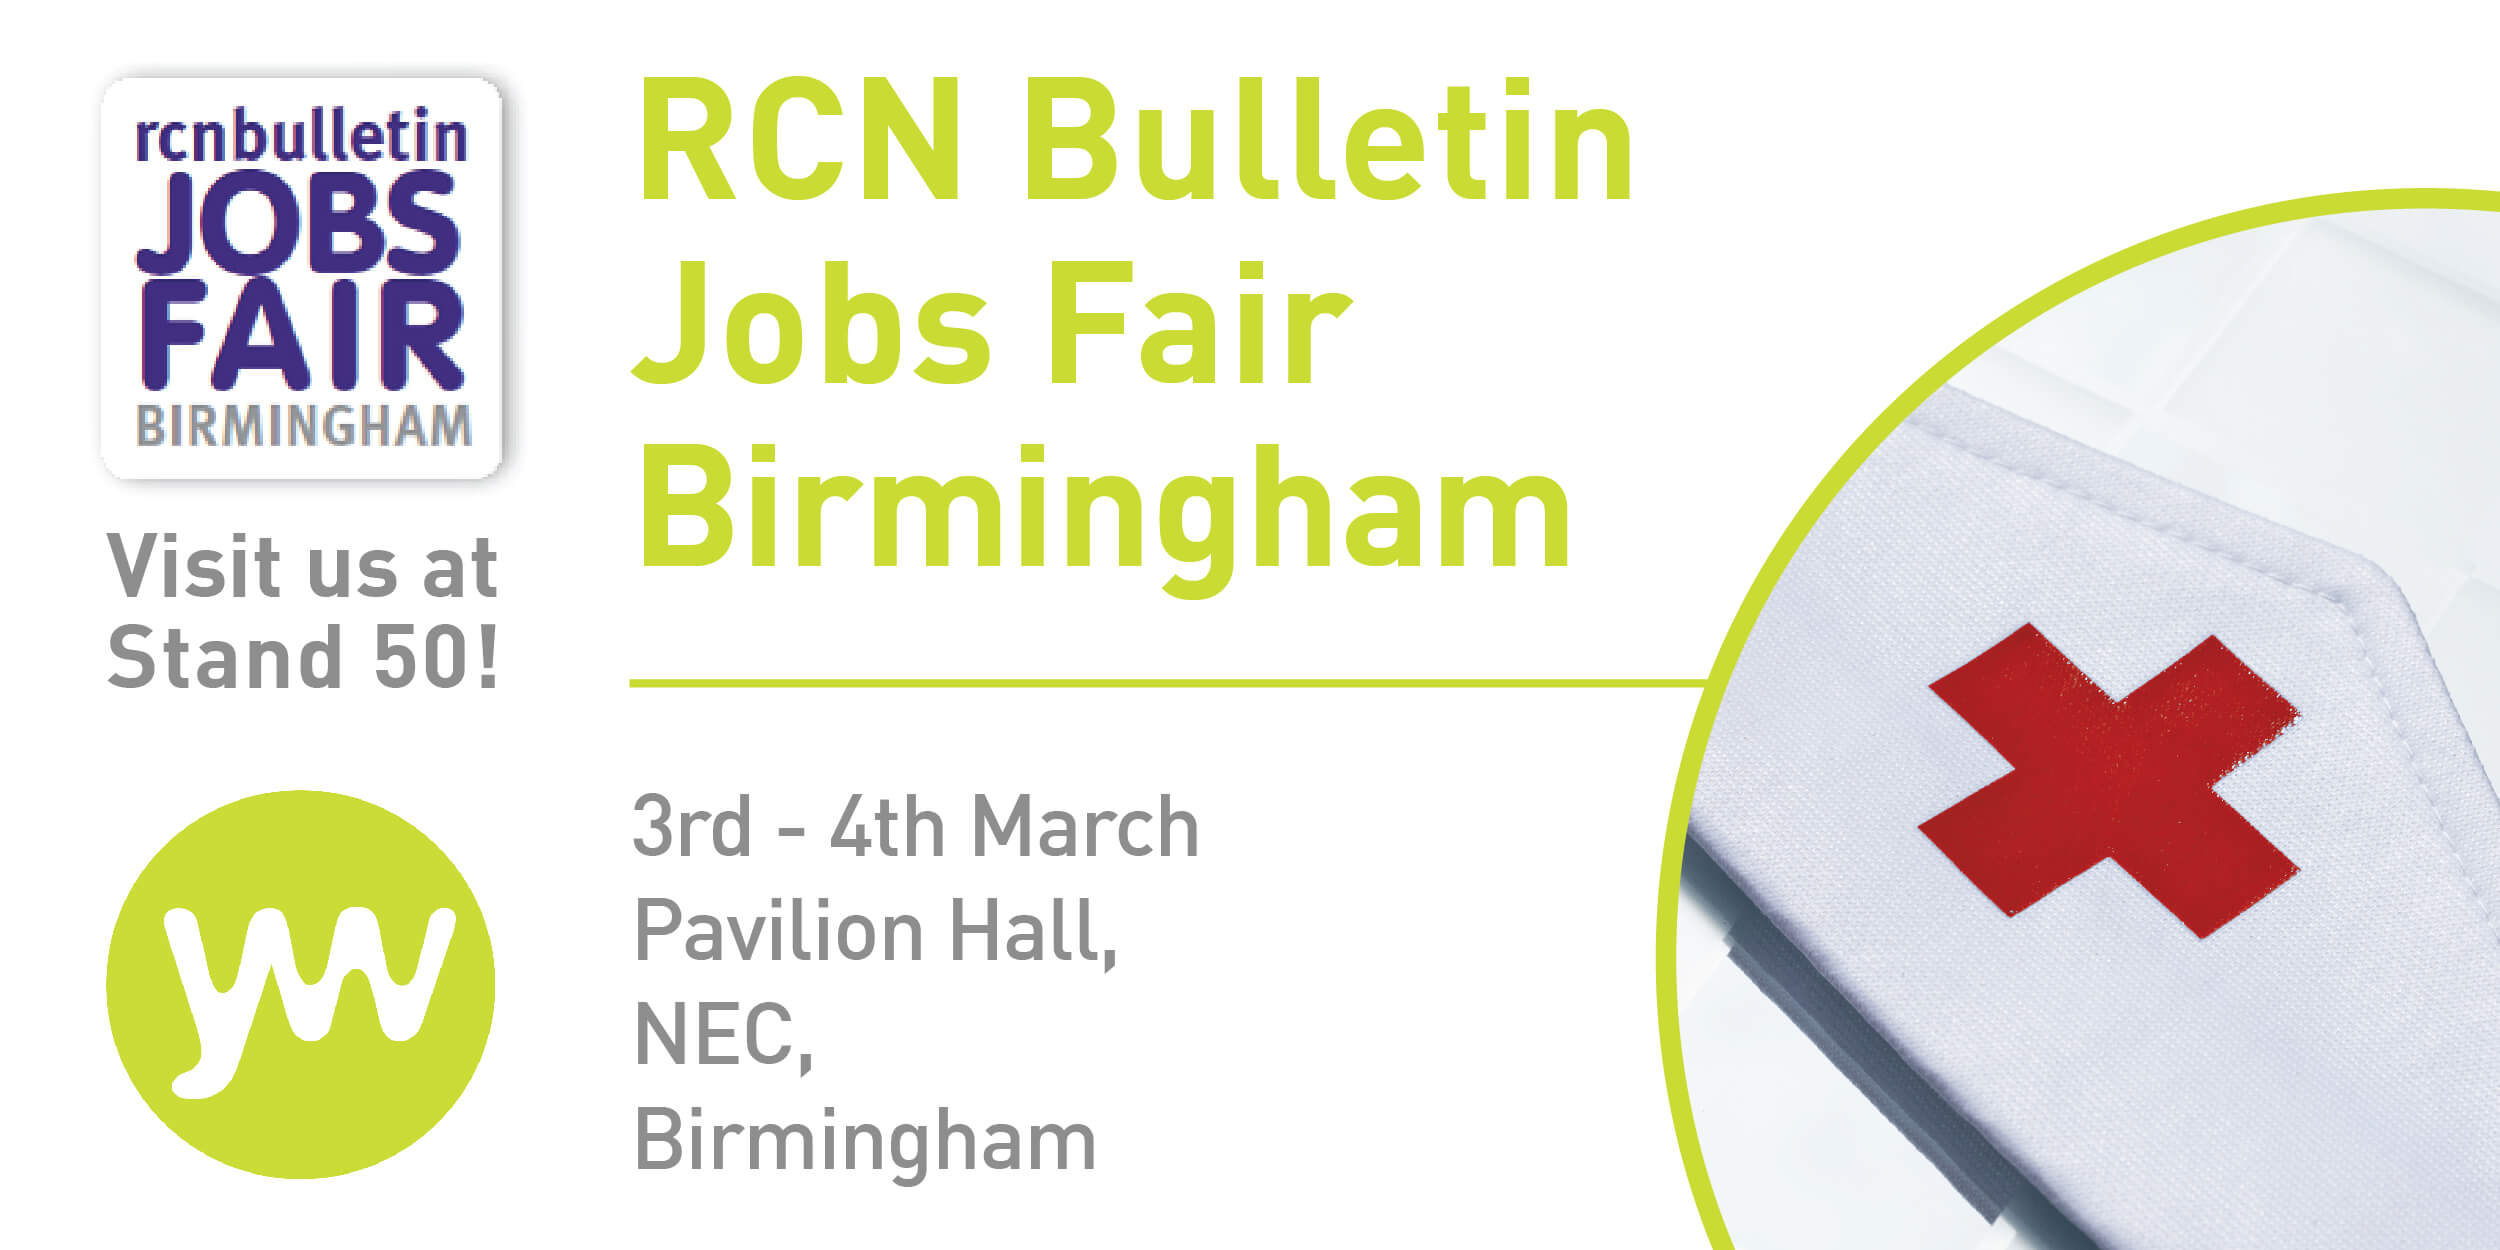 RCN Bulletin Jobs Fair Birmingham: 3-4 March 2016